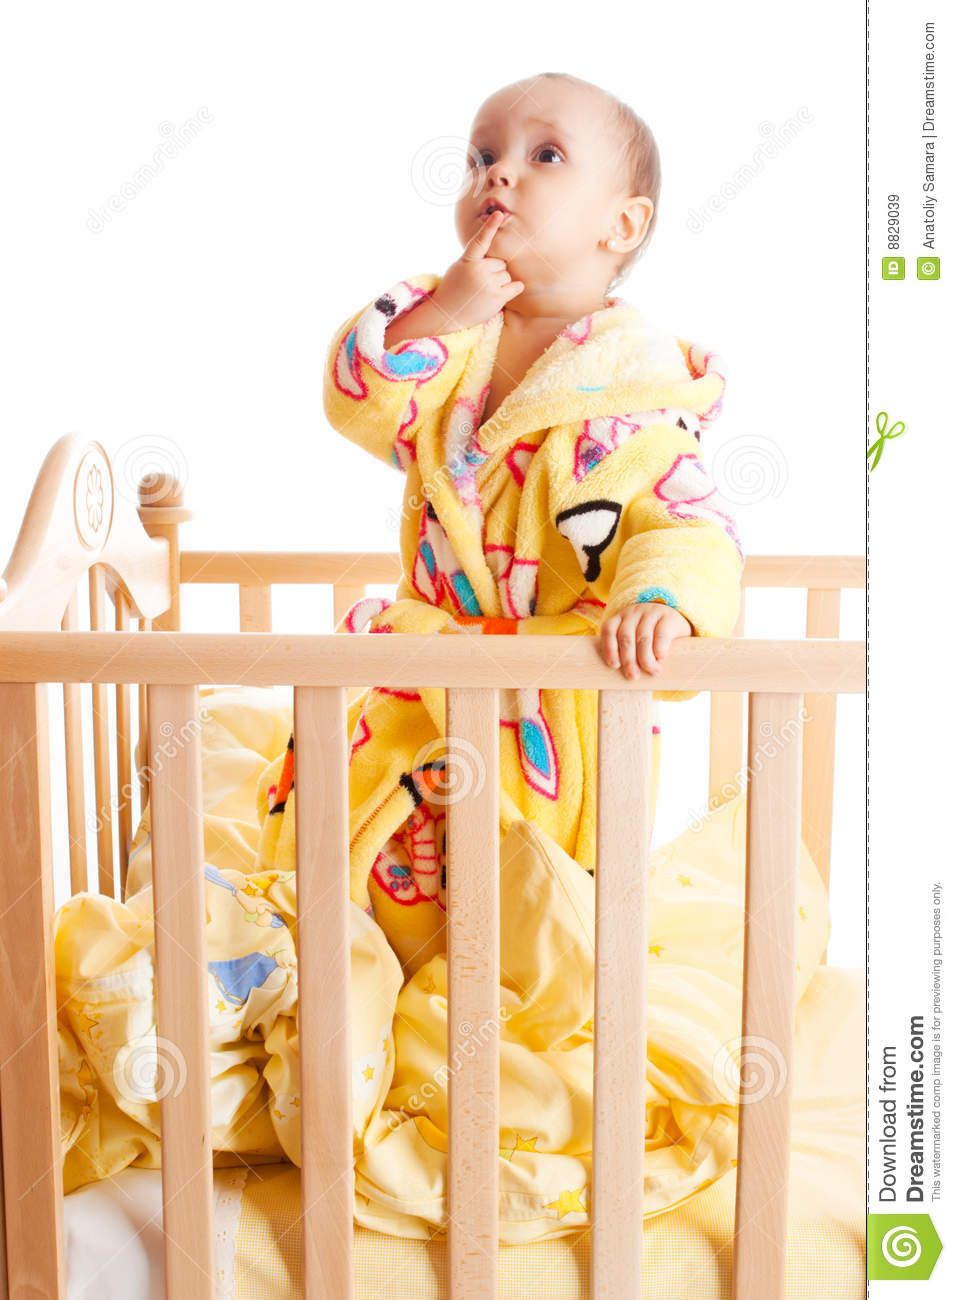 how to avoid baby finger in mouth